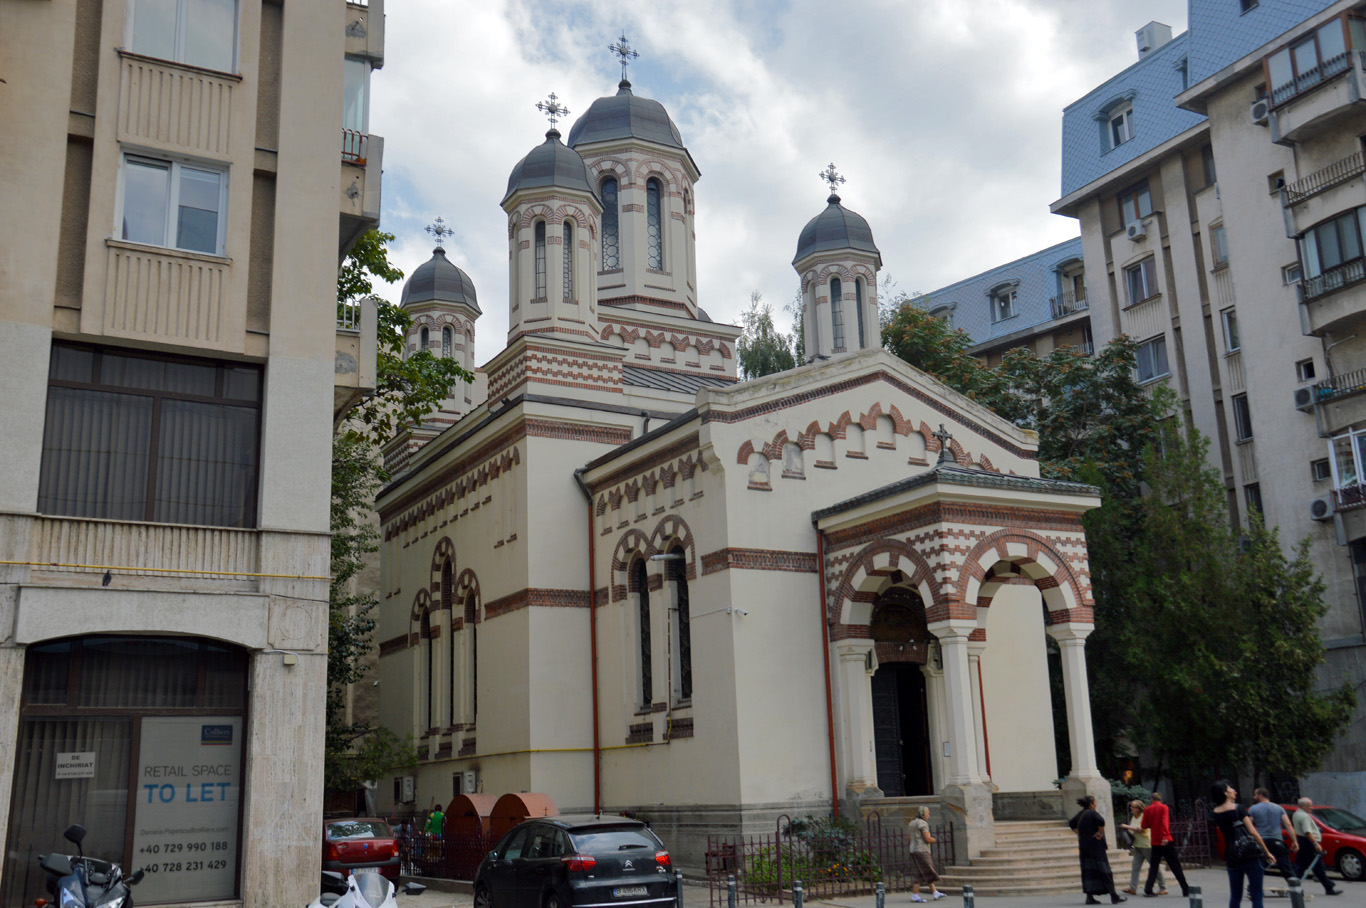 A typical sight - a church in between blocks